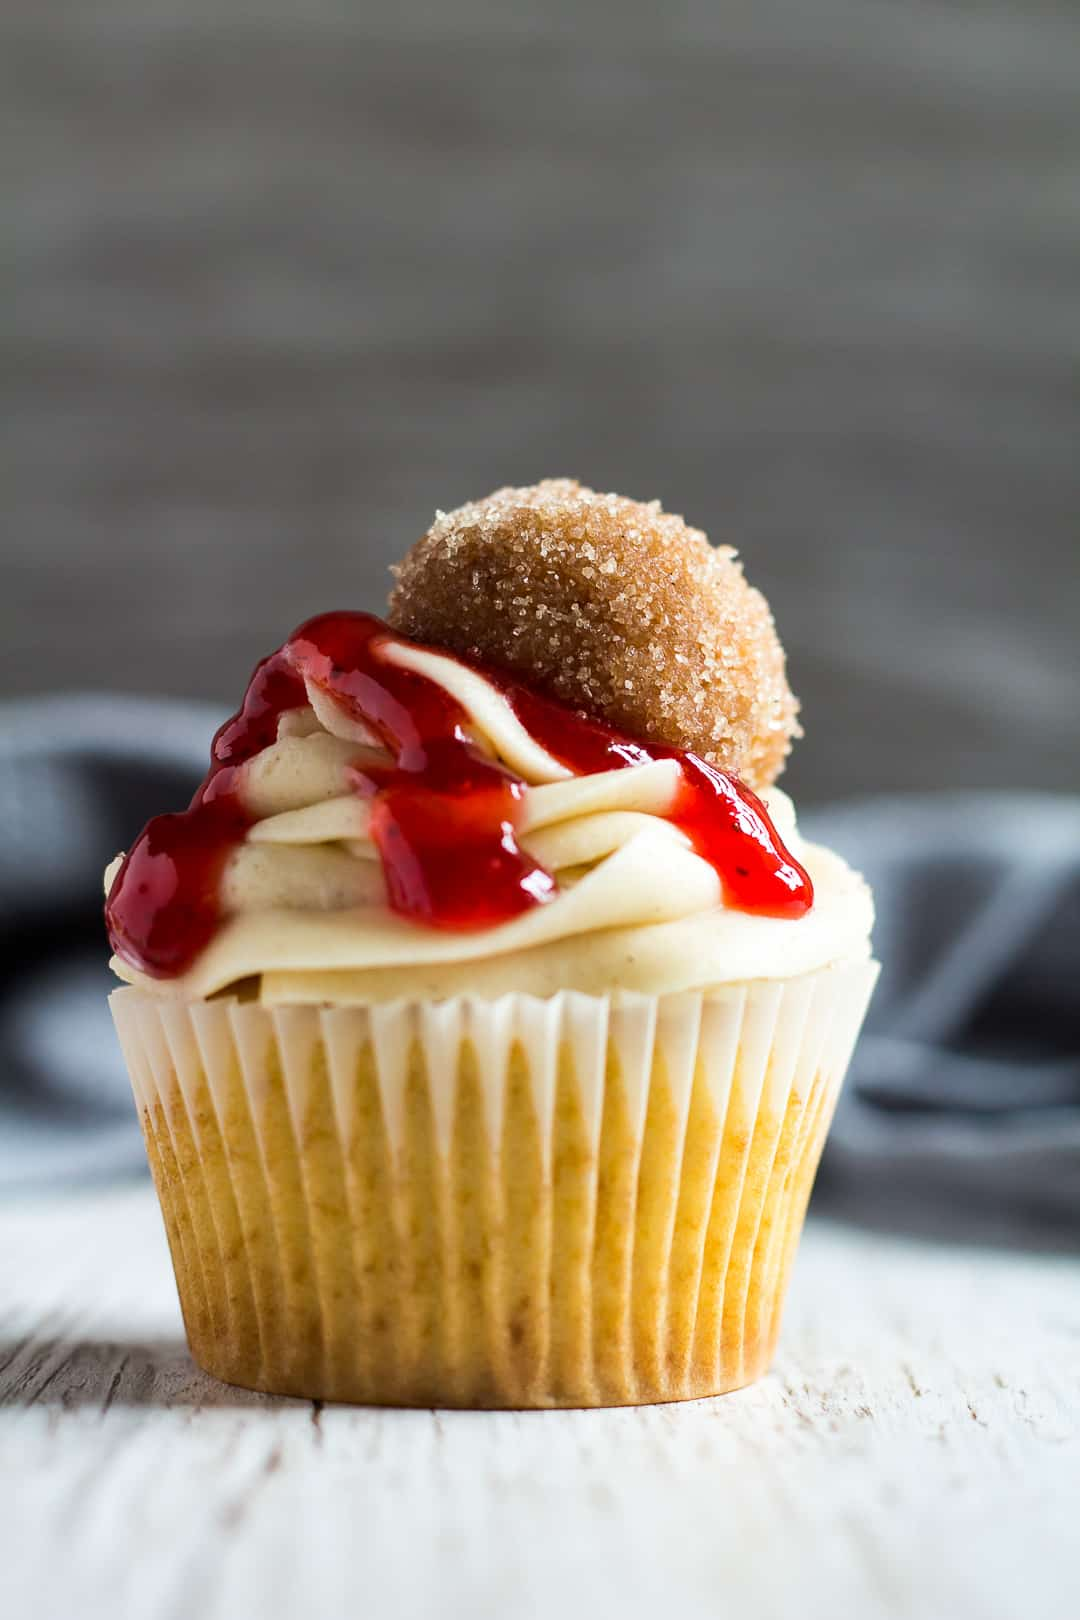 A vanilla cupcake topped with frosting, a drizzle of strawberry jam, and a doughnut hole.